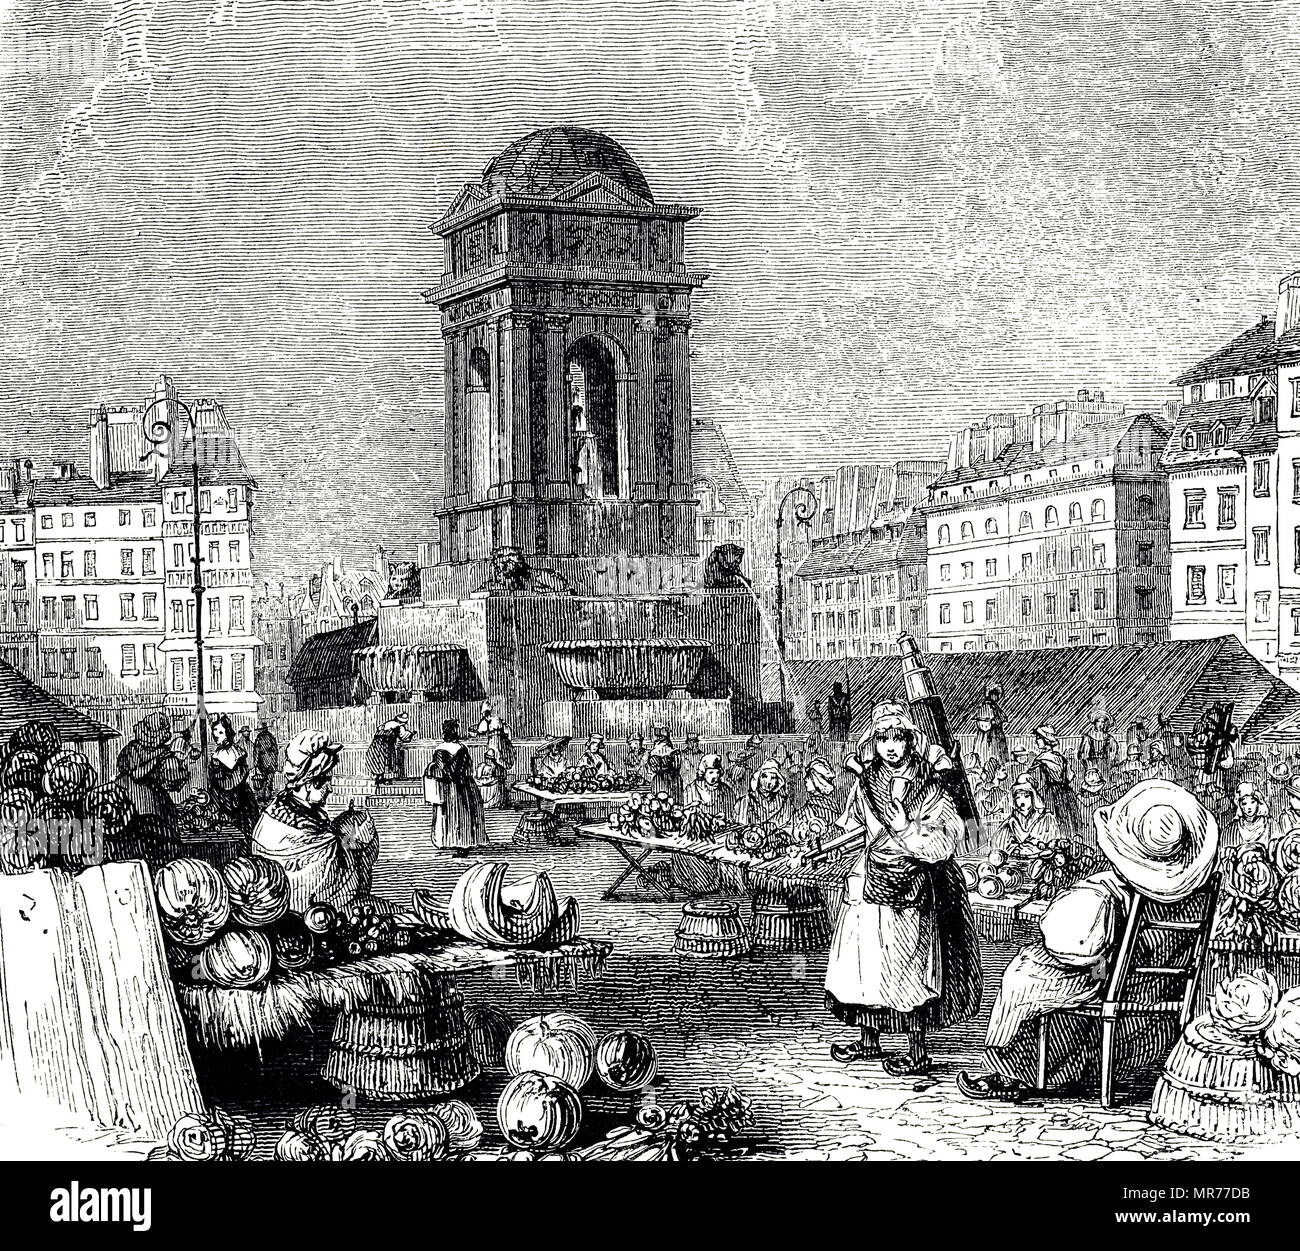 Engraving depicting Marche des Innocens, the market which supplied Paris with flowers, fruit and vegetables. Dated 19th century - Stock Image